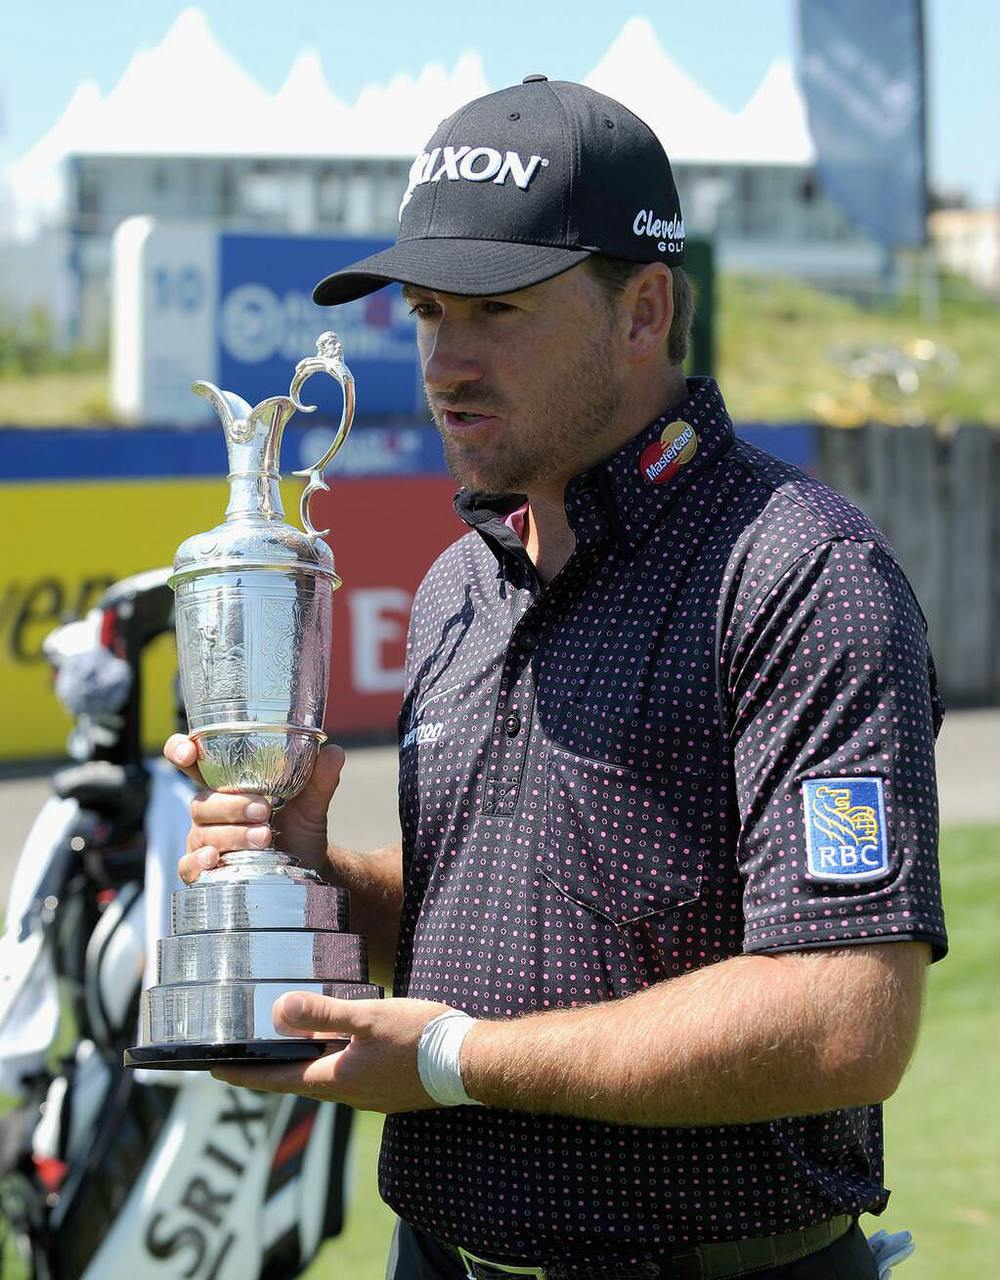 Graeme McDowell with the Claret Jug in Paris this week. An omen?